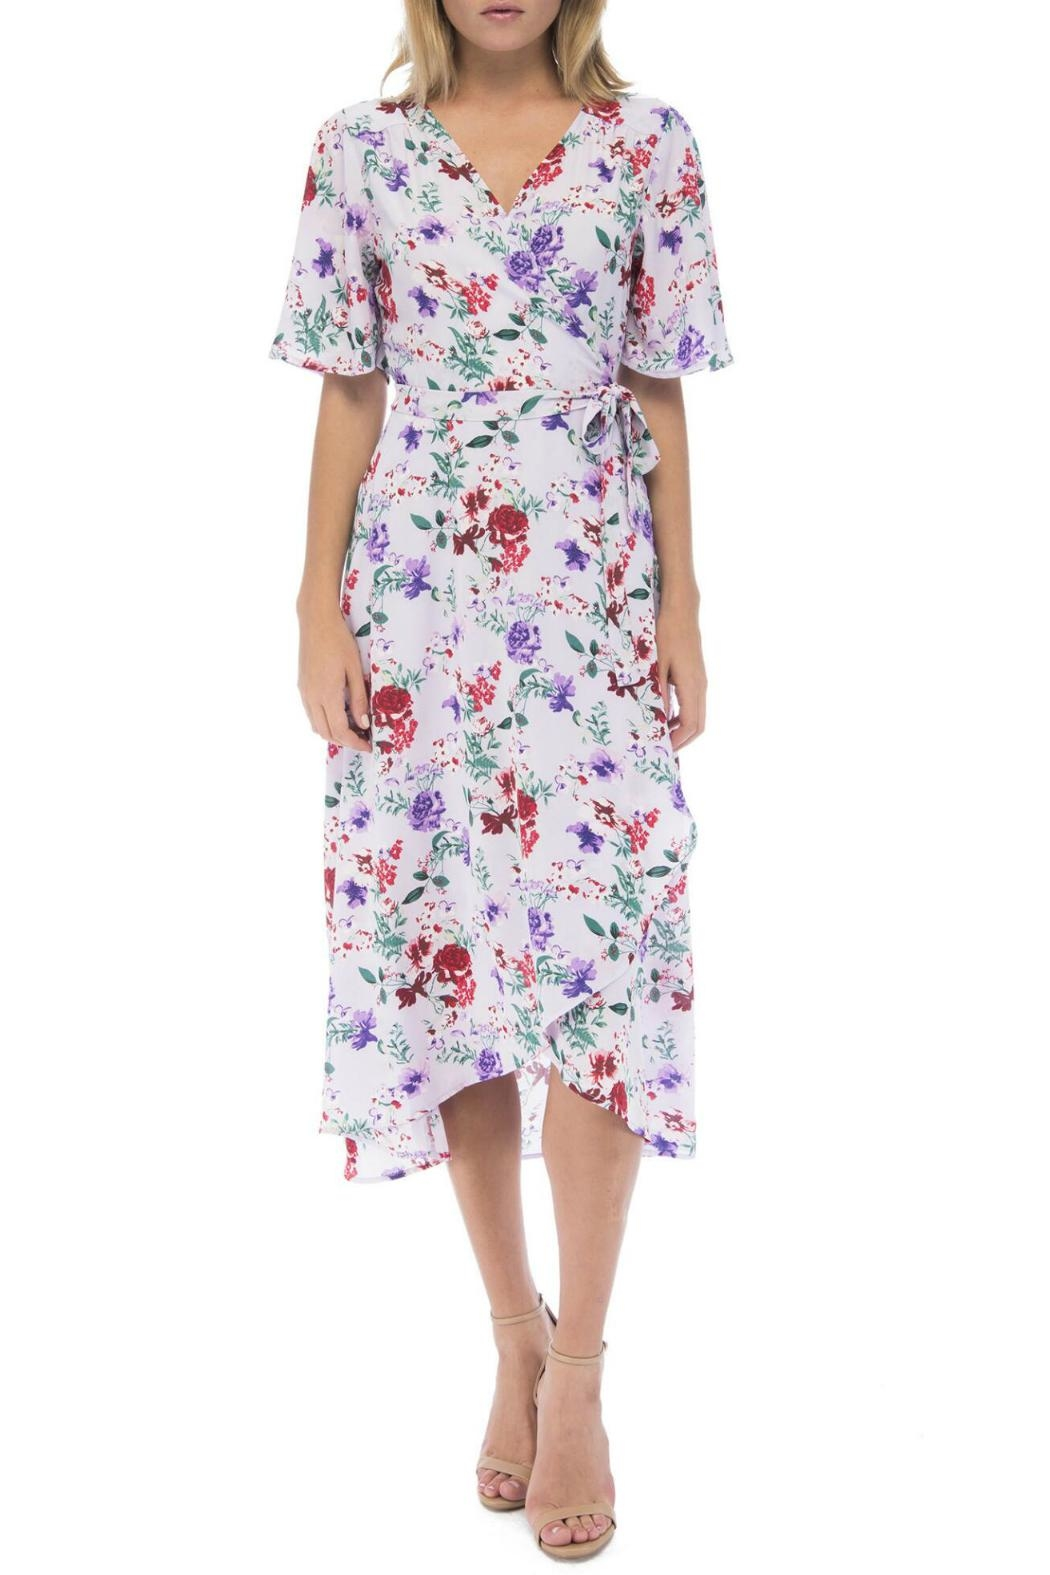 Bobeau Orna Floral Wrap-Dress - Front Cropped Image